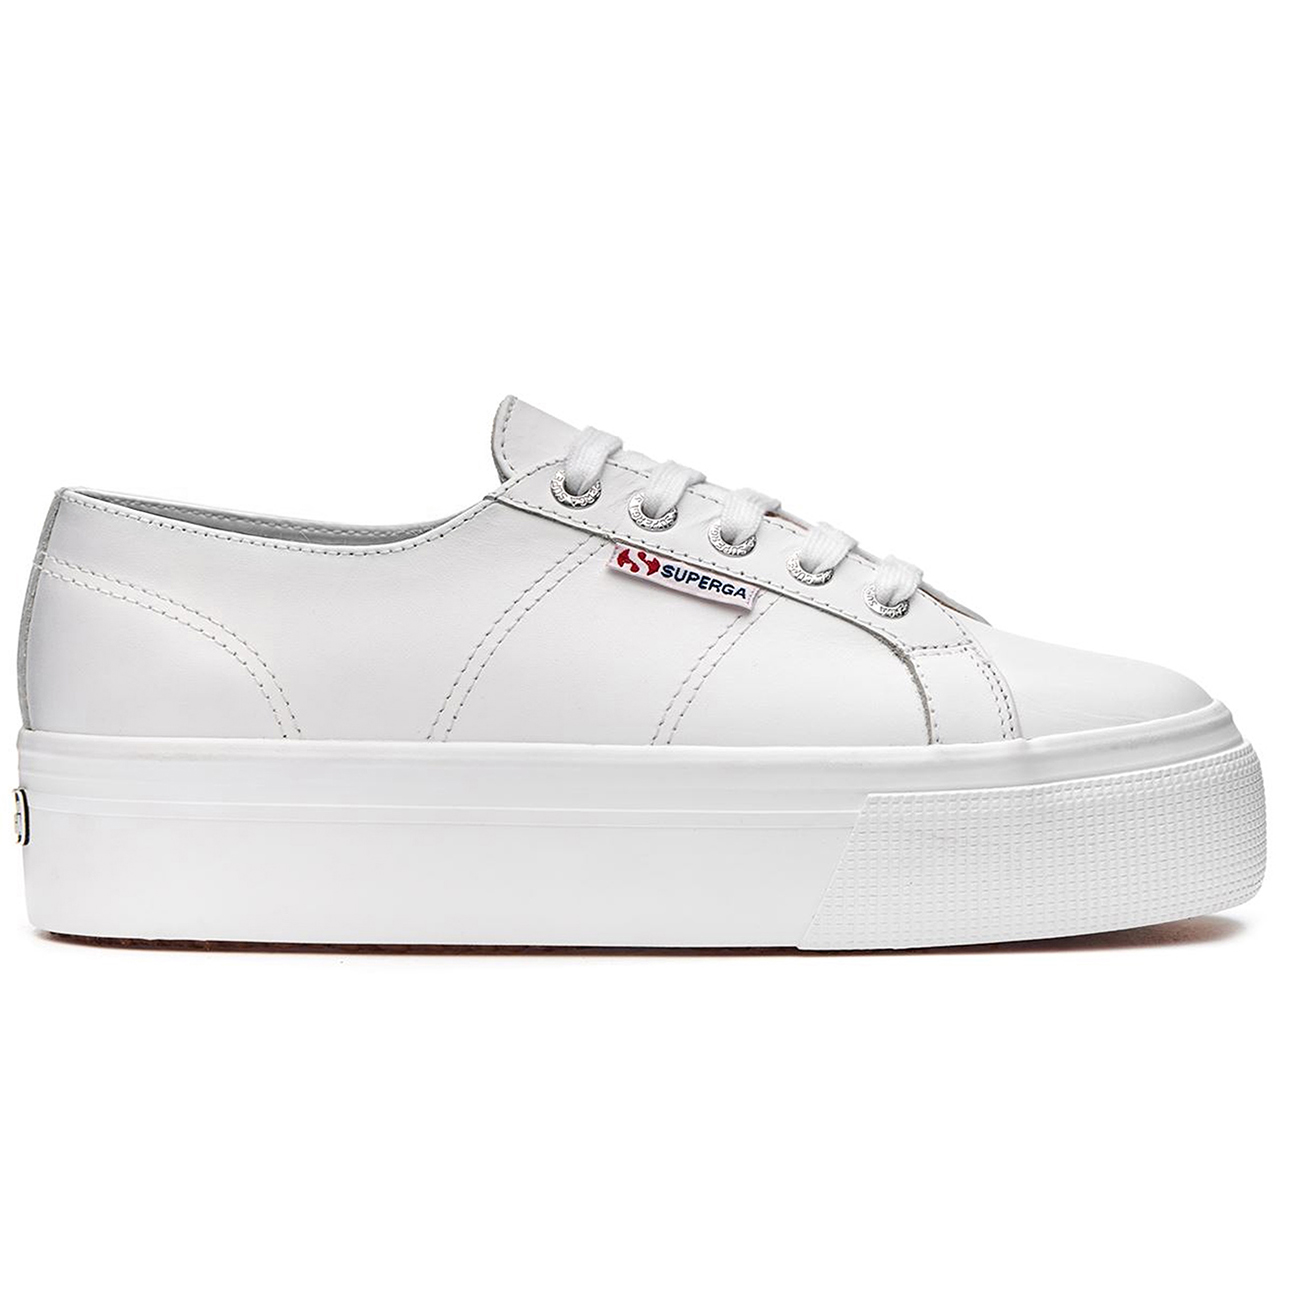 Womens Superga 2790 Nappa Flatform Wedge Summer Lace Up Fashion Trainers UK 3-9